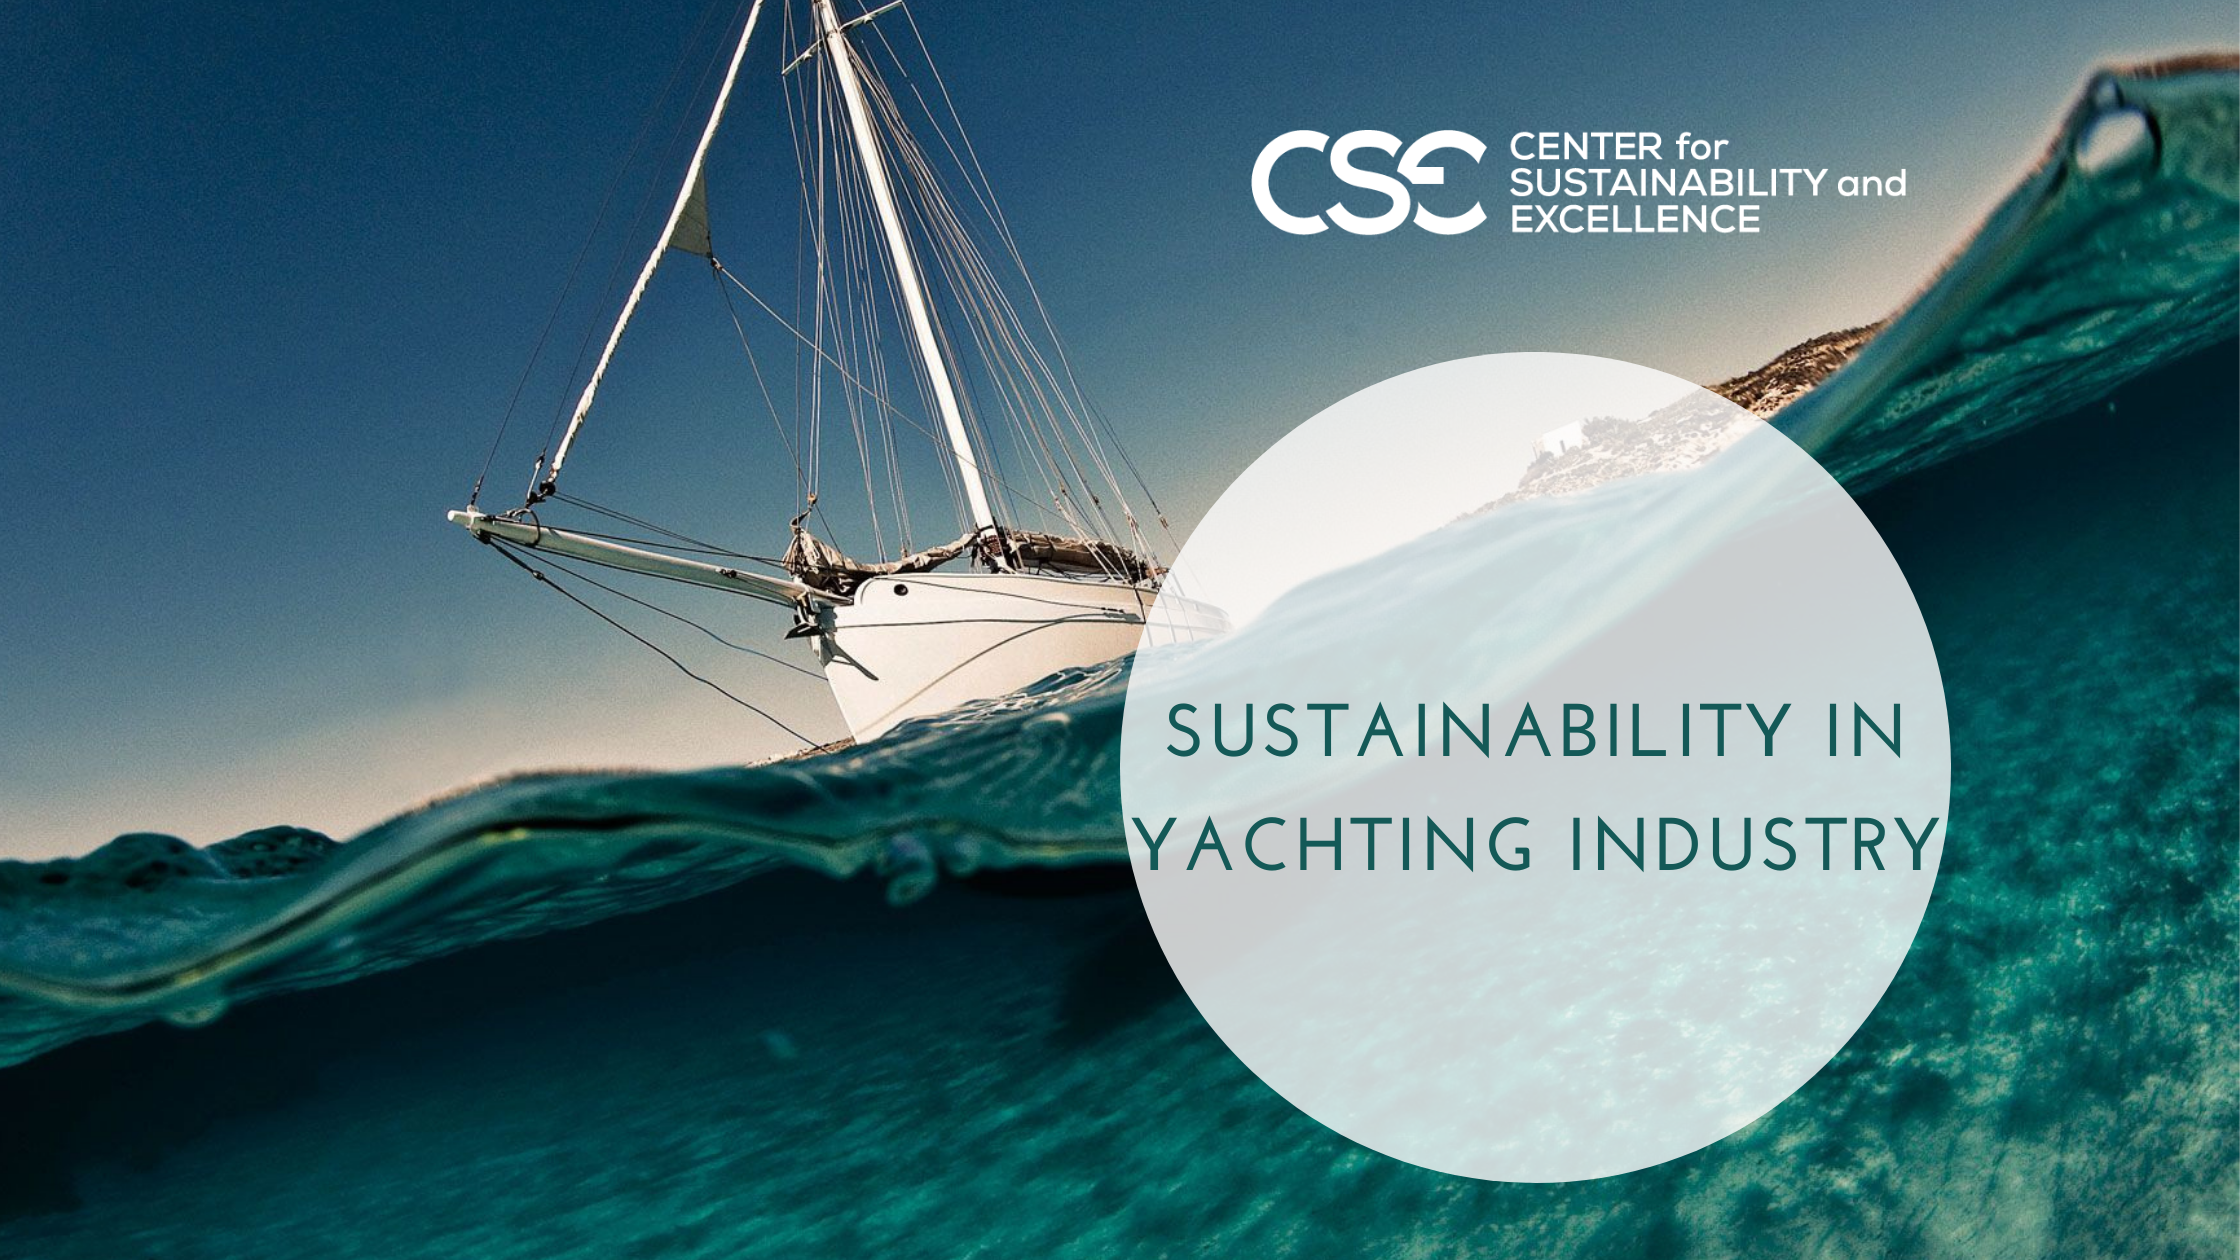 Two critical tools in applying Sustainability in Yachting: Materiality Assessment and Sustainability Reporting